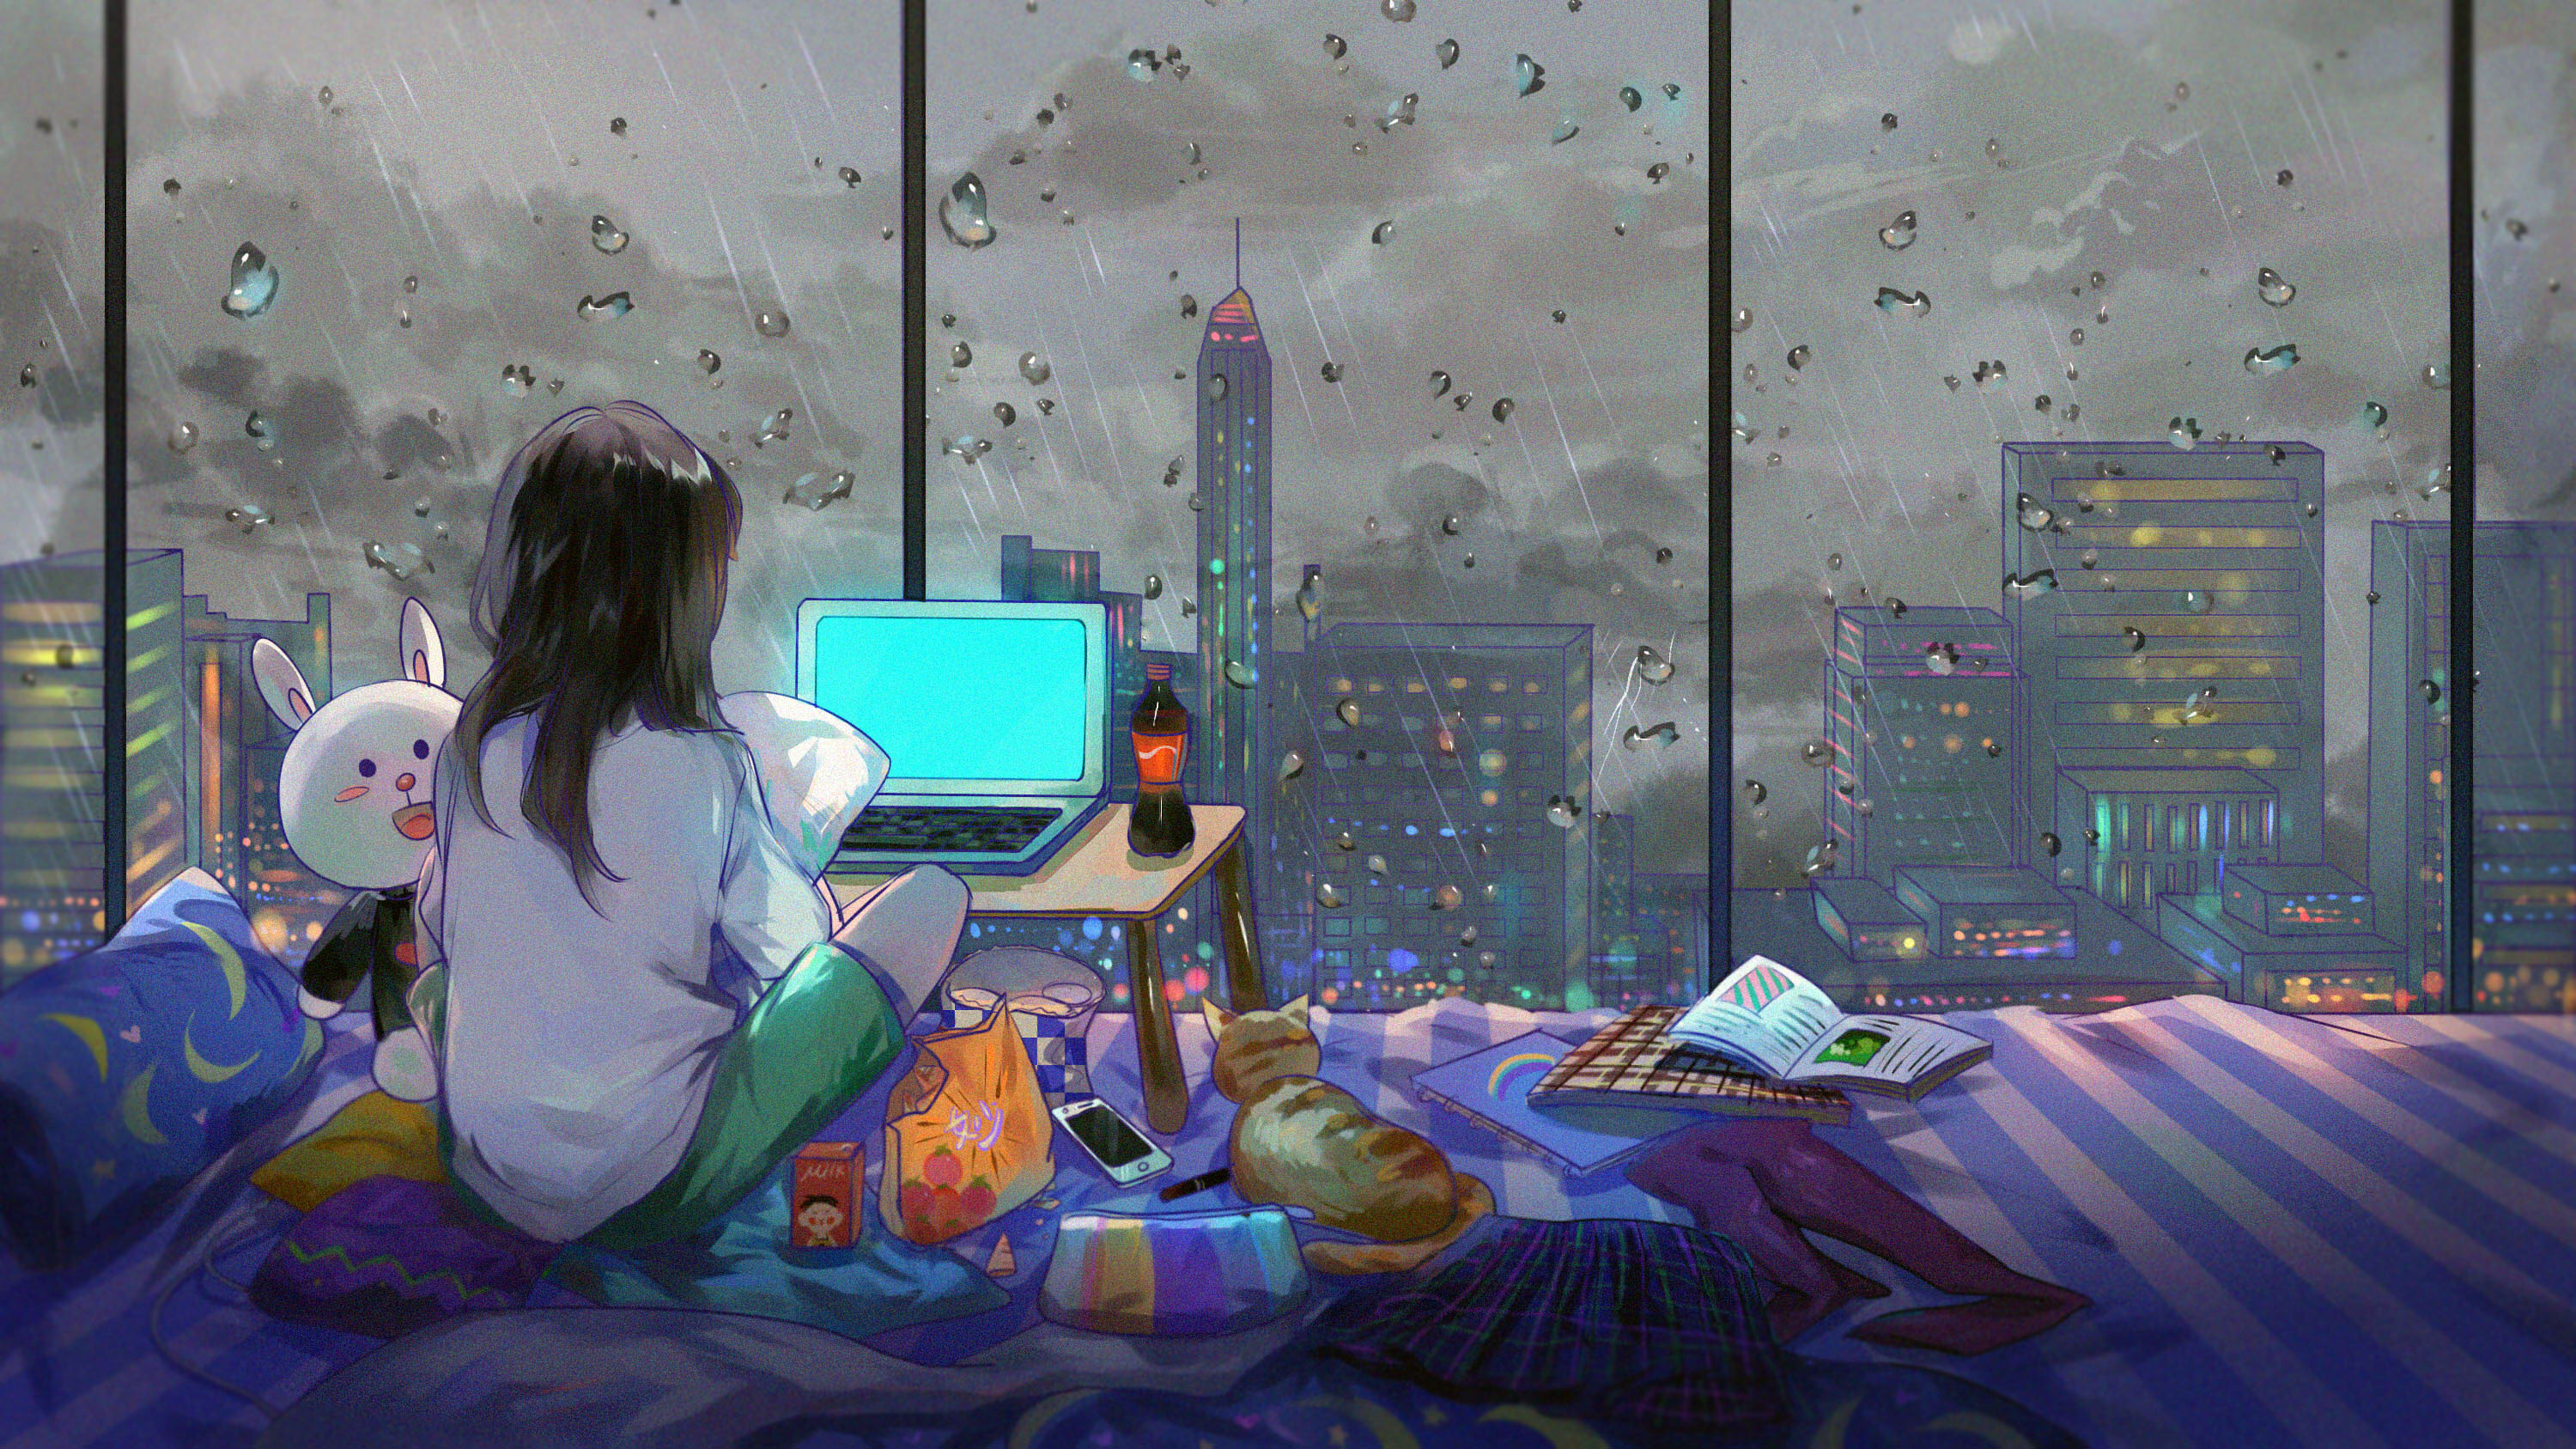 2048x1152 Anime Girl Room City Cat 2048x1152 Resolution Hd 4k